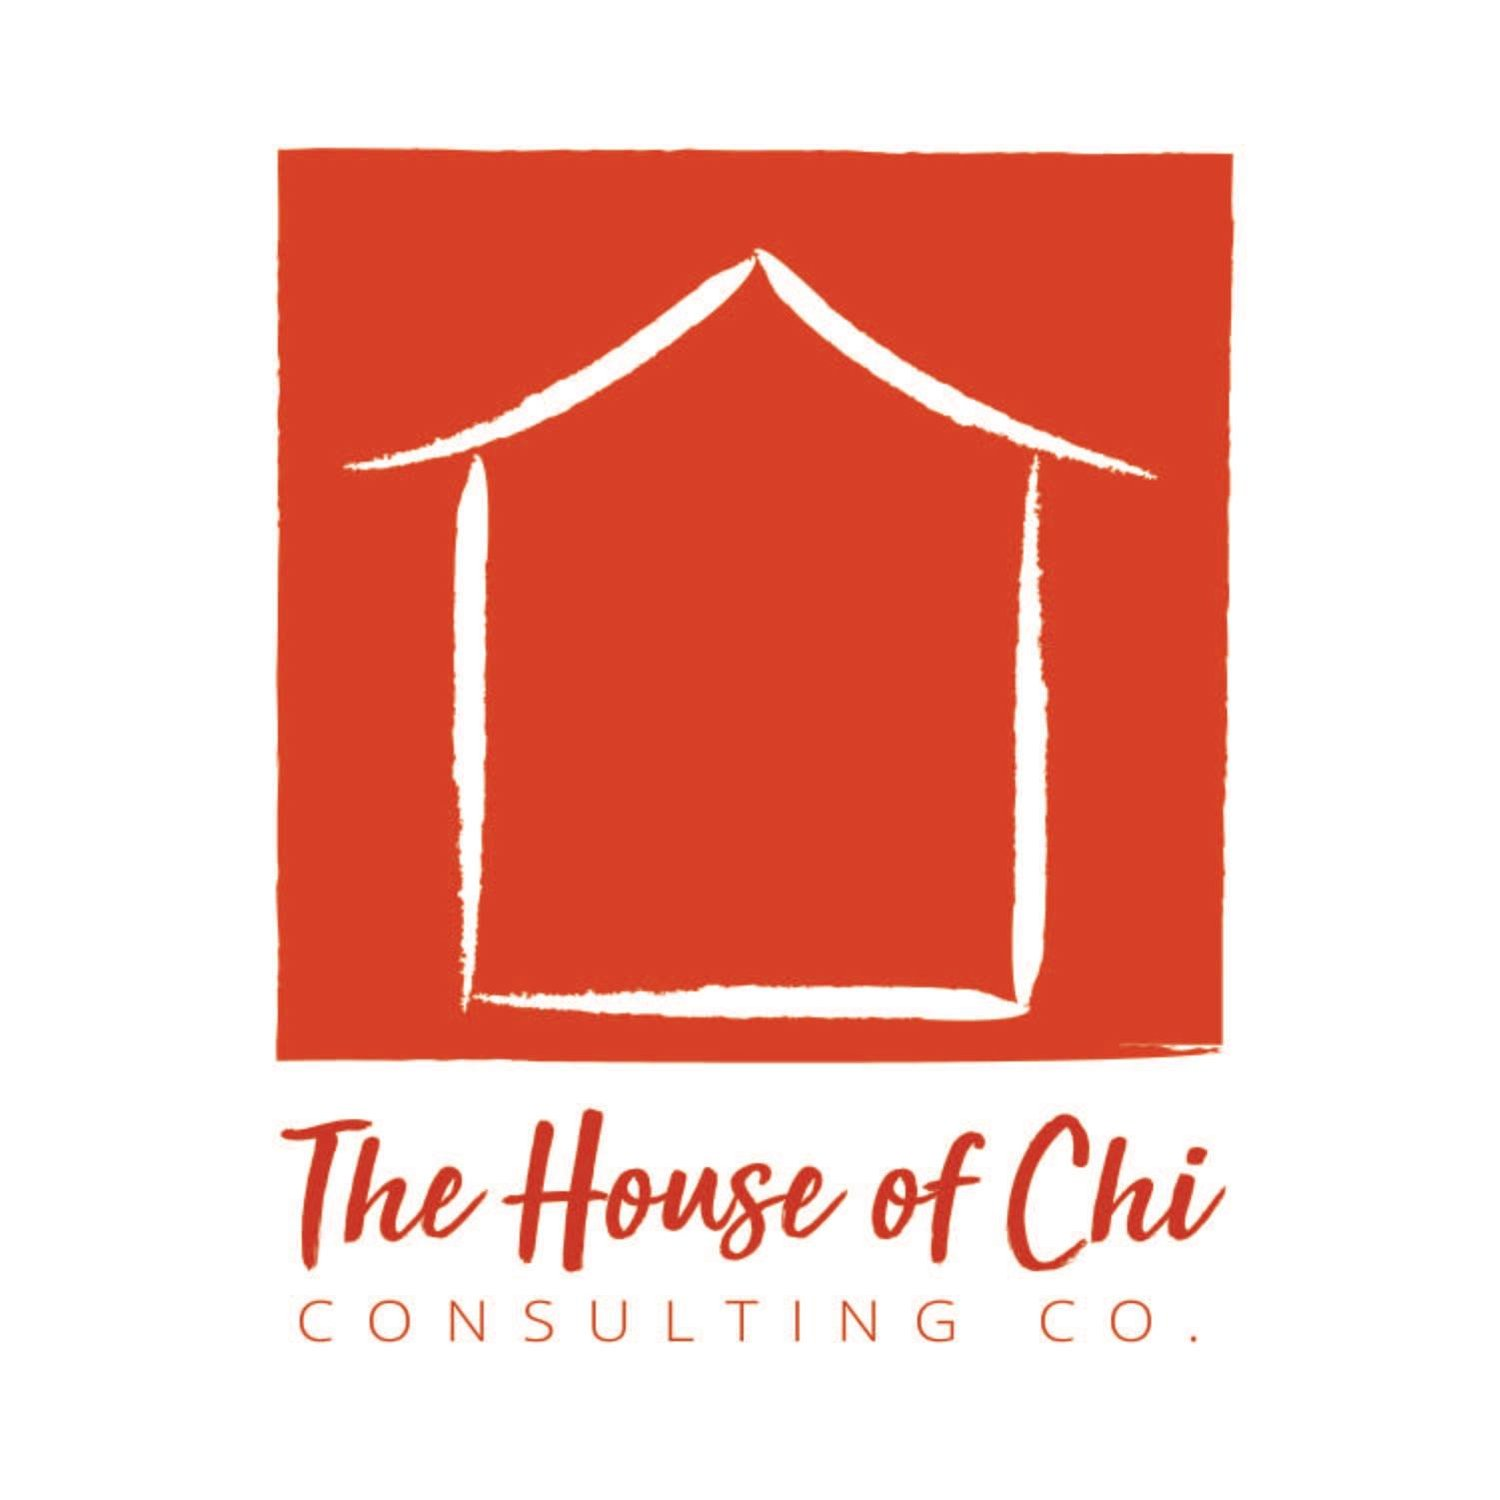 The House of Chi